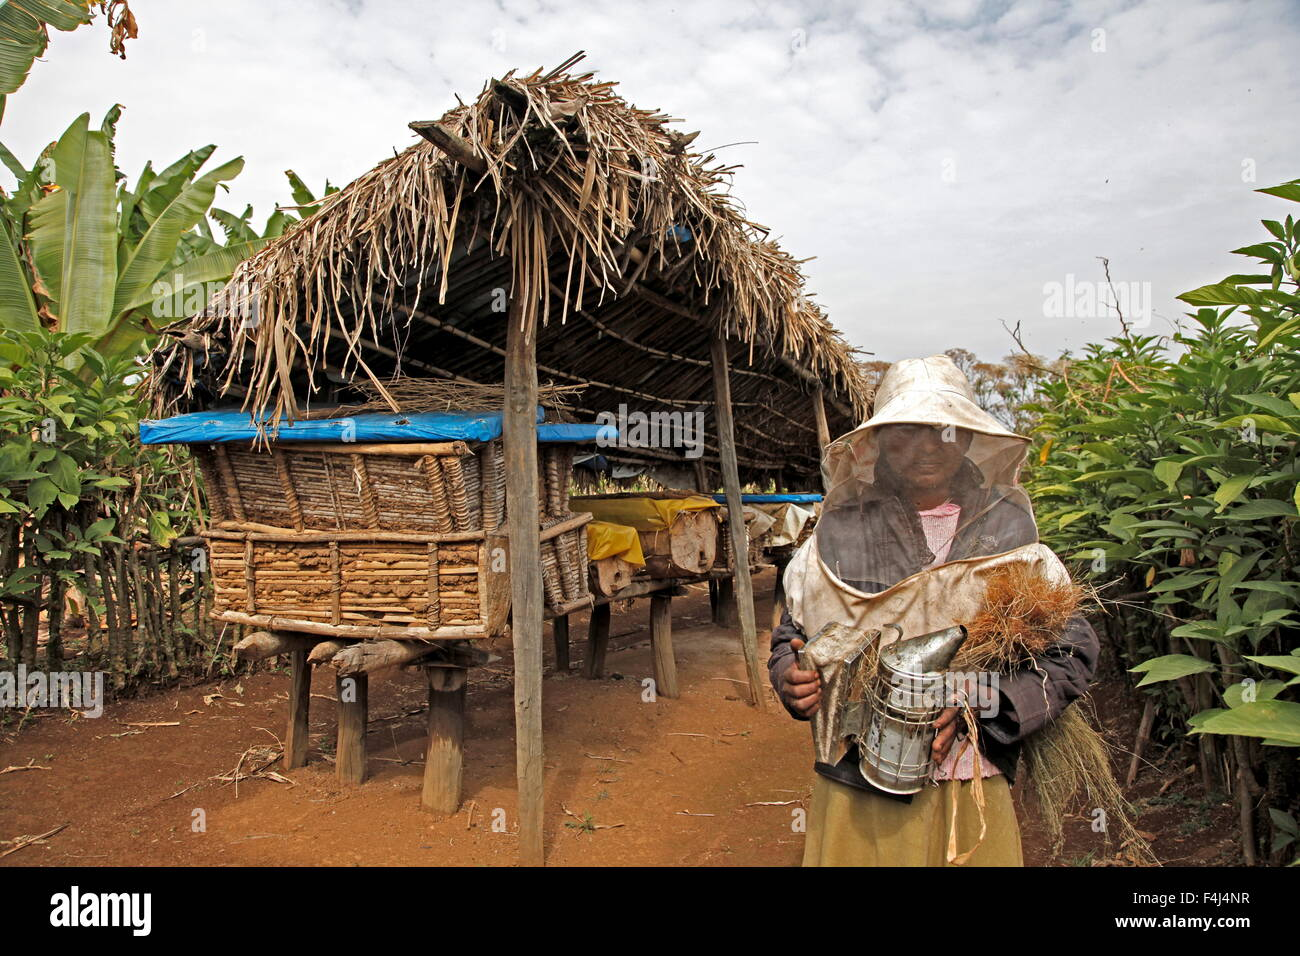 Farmer working in a honey producing co-operative in the Masha area of Ethiopia, Africa - Stock Image